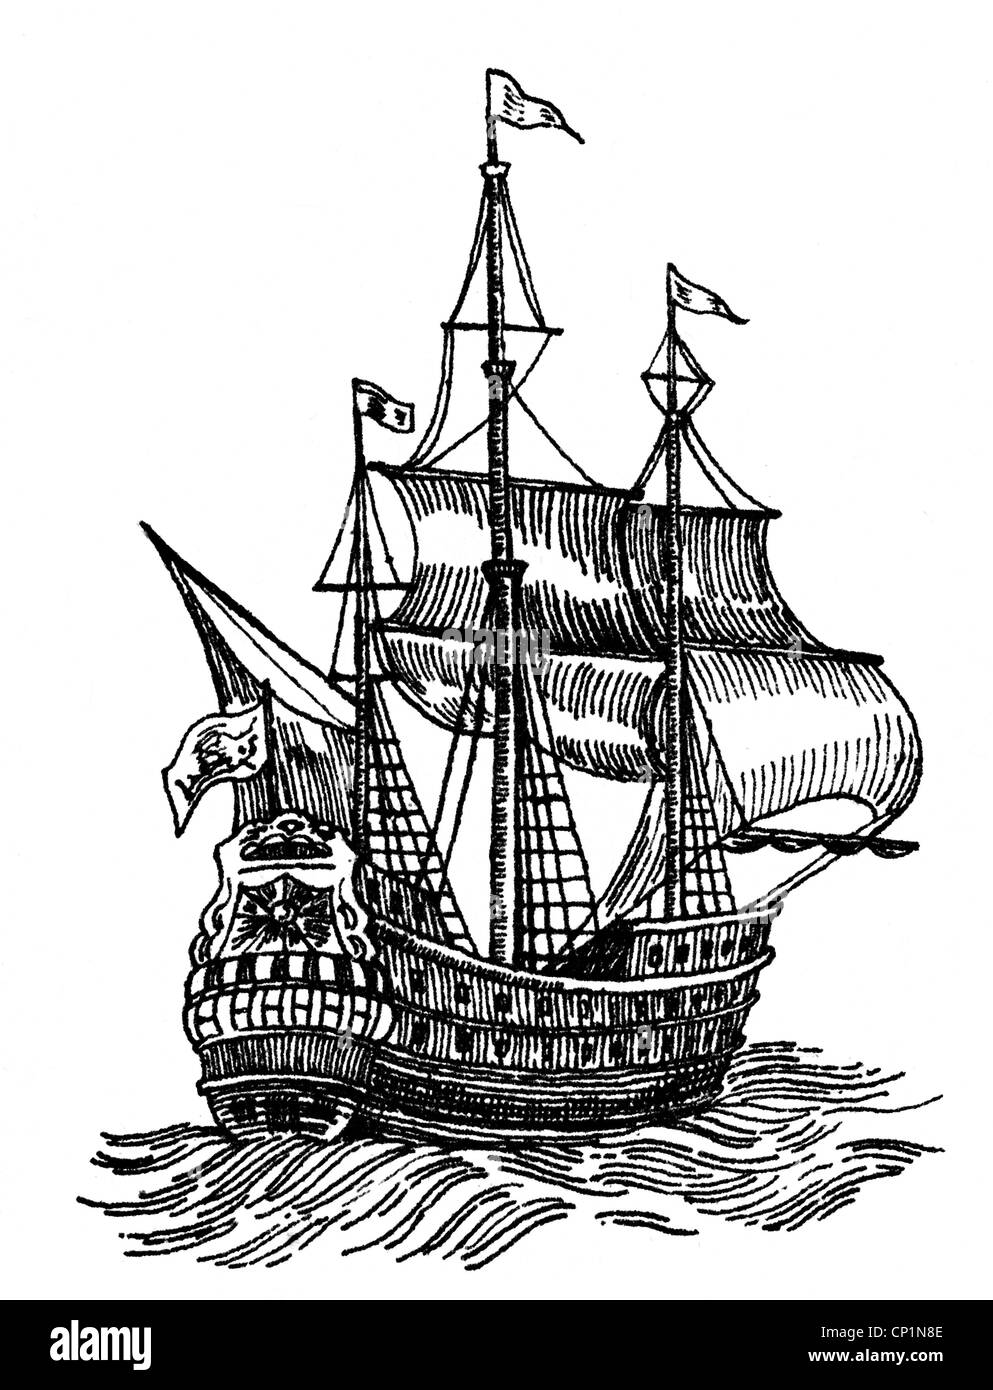 transport / transportation, navigation, sailing ships, caravel, caravel from the 17th century, wood engraving, 19th - Stock Image